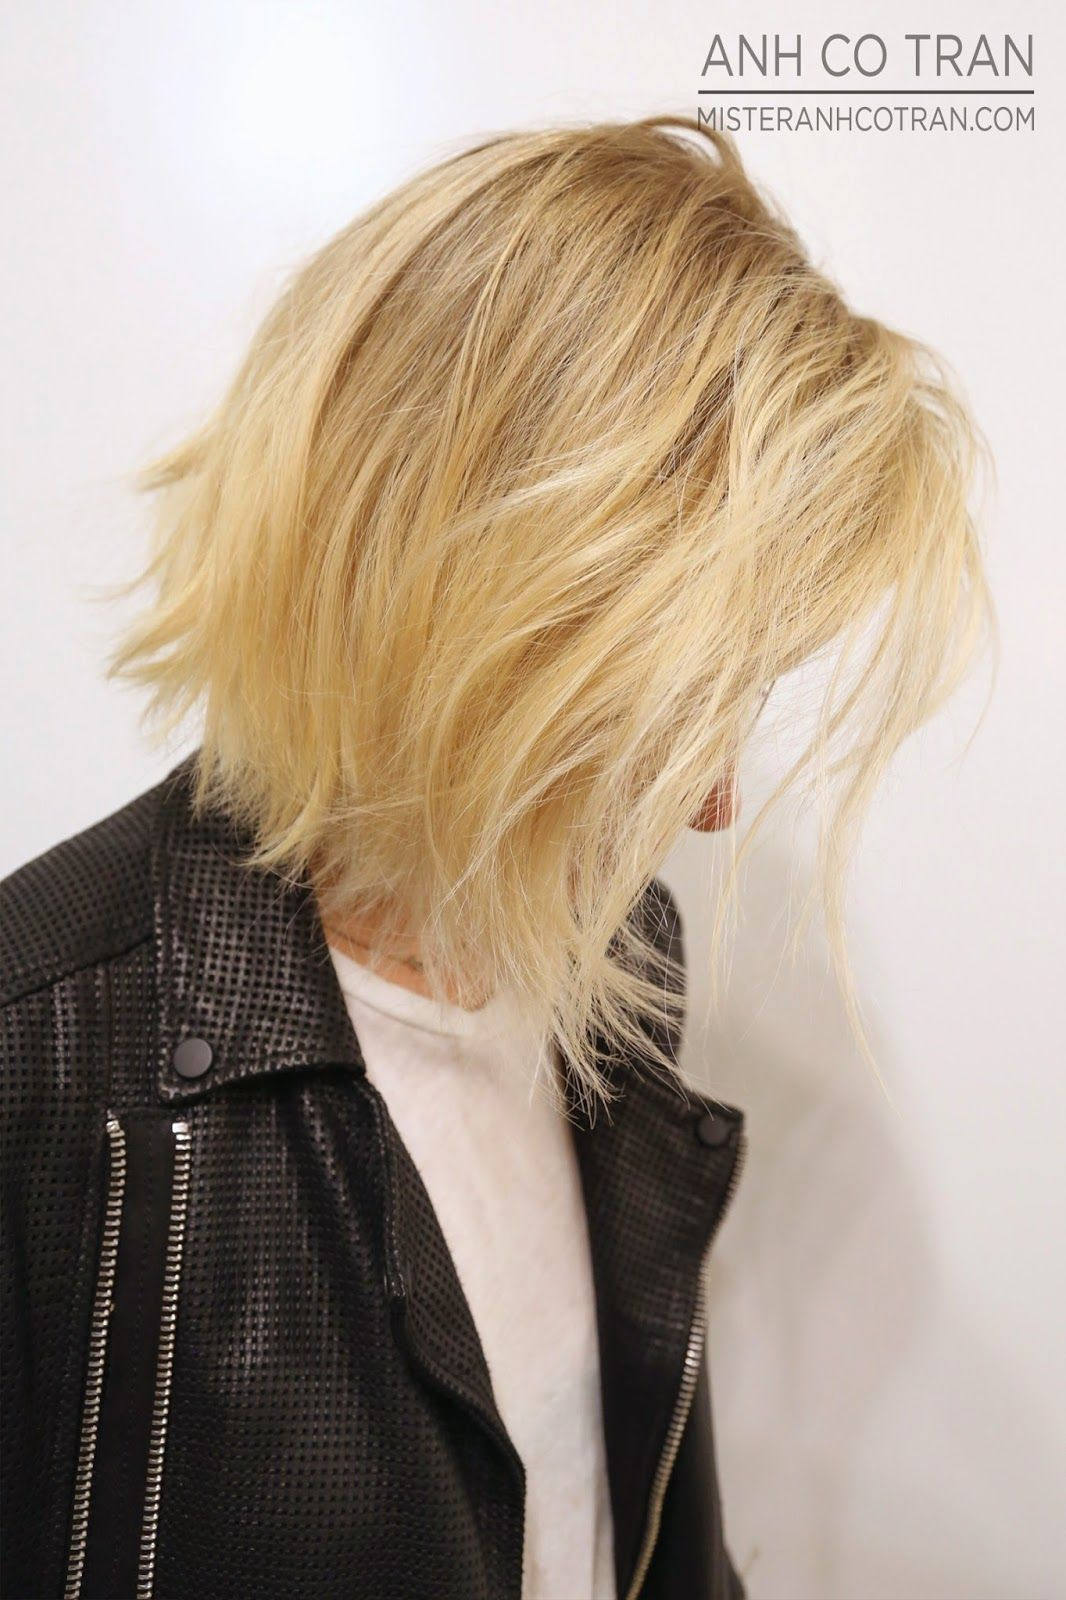 FROM CLASSIC TO TRÉS CHIC. Cut/Style: Anh Co Tran. Appointment inquiries please call Ramirez|Tran Salon in Beverly Hills: 310.724.8167